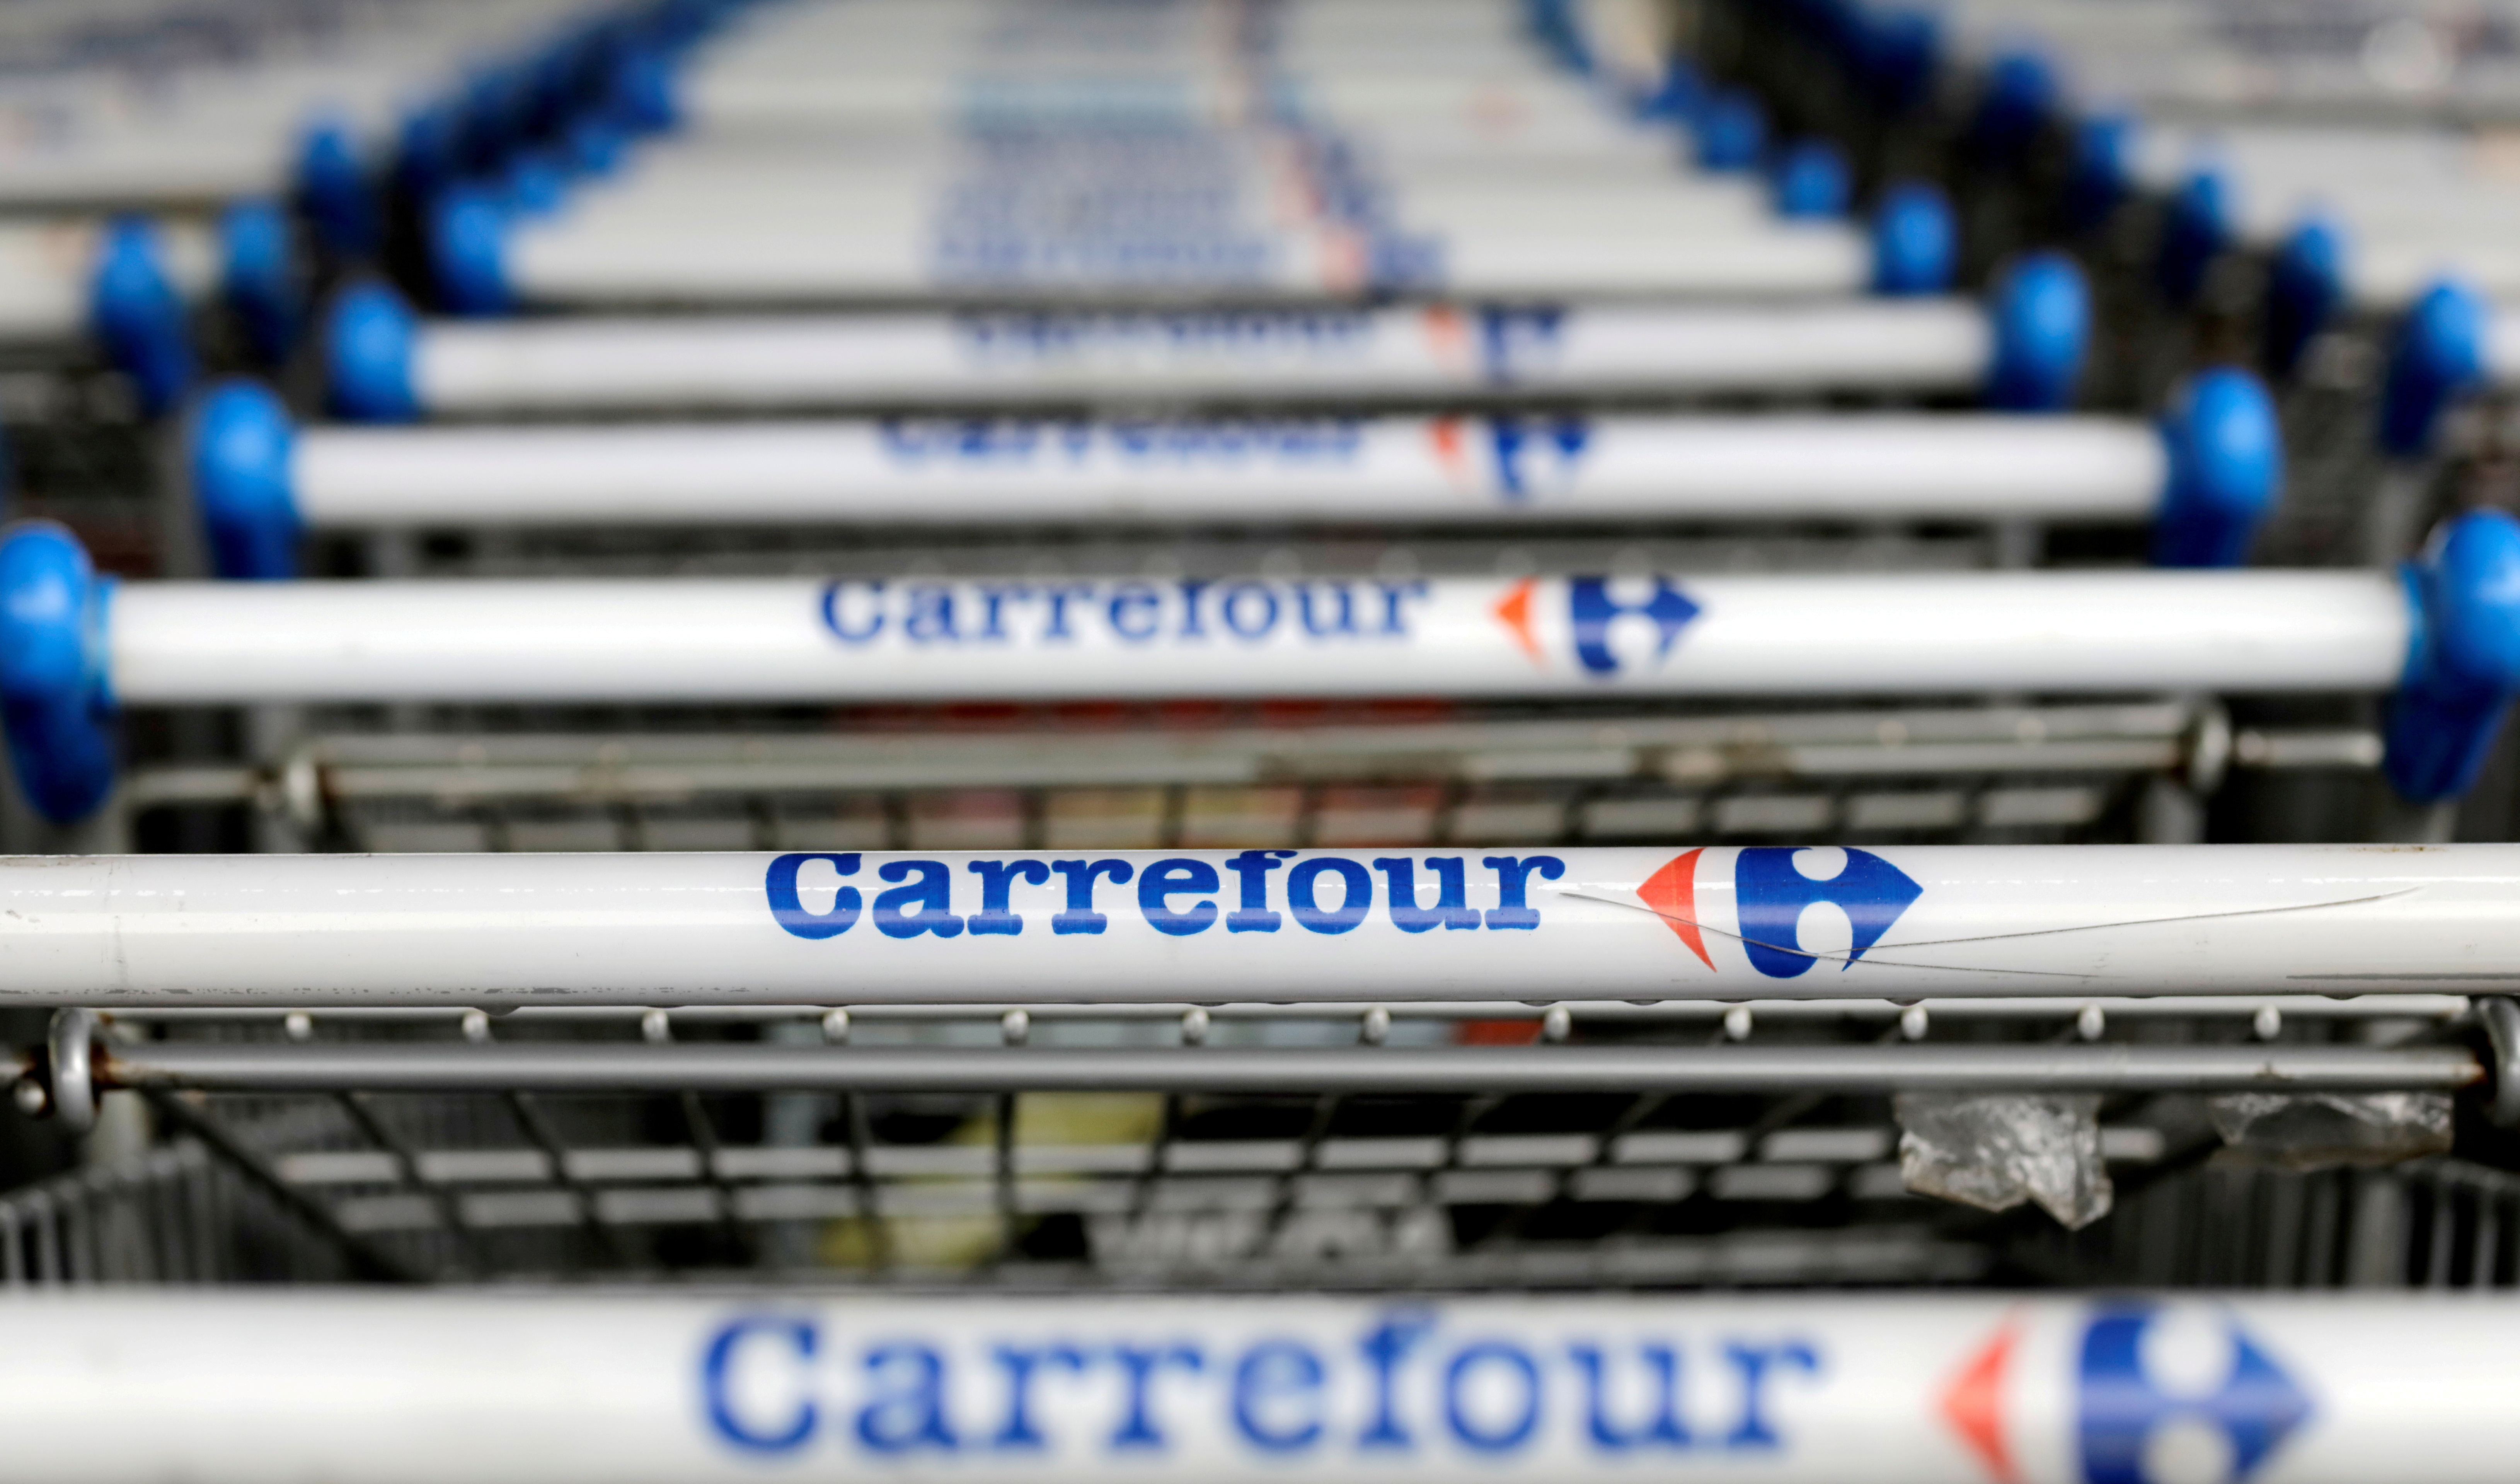 The logo of French retailer Carrefour on shopping trolleys in Sao Paulo, Brazil, July 18, 2017. REUTERS/Paulo Whitaker